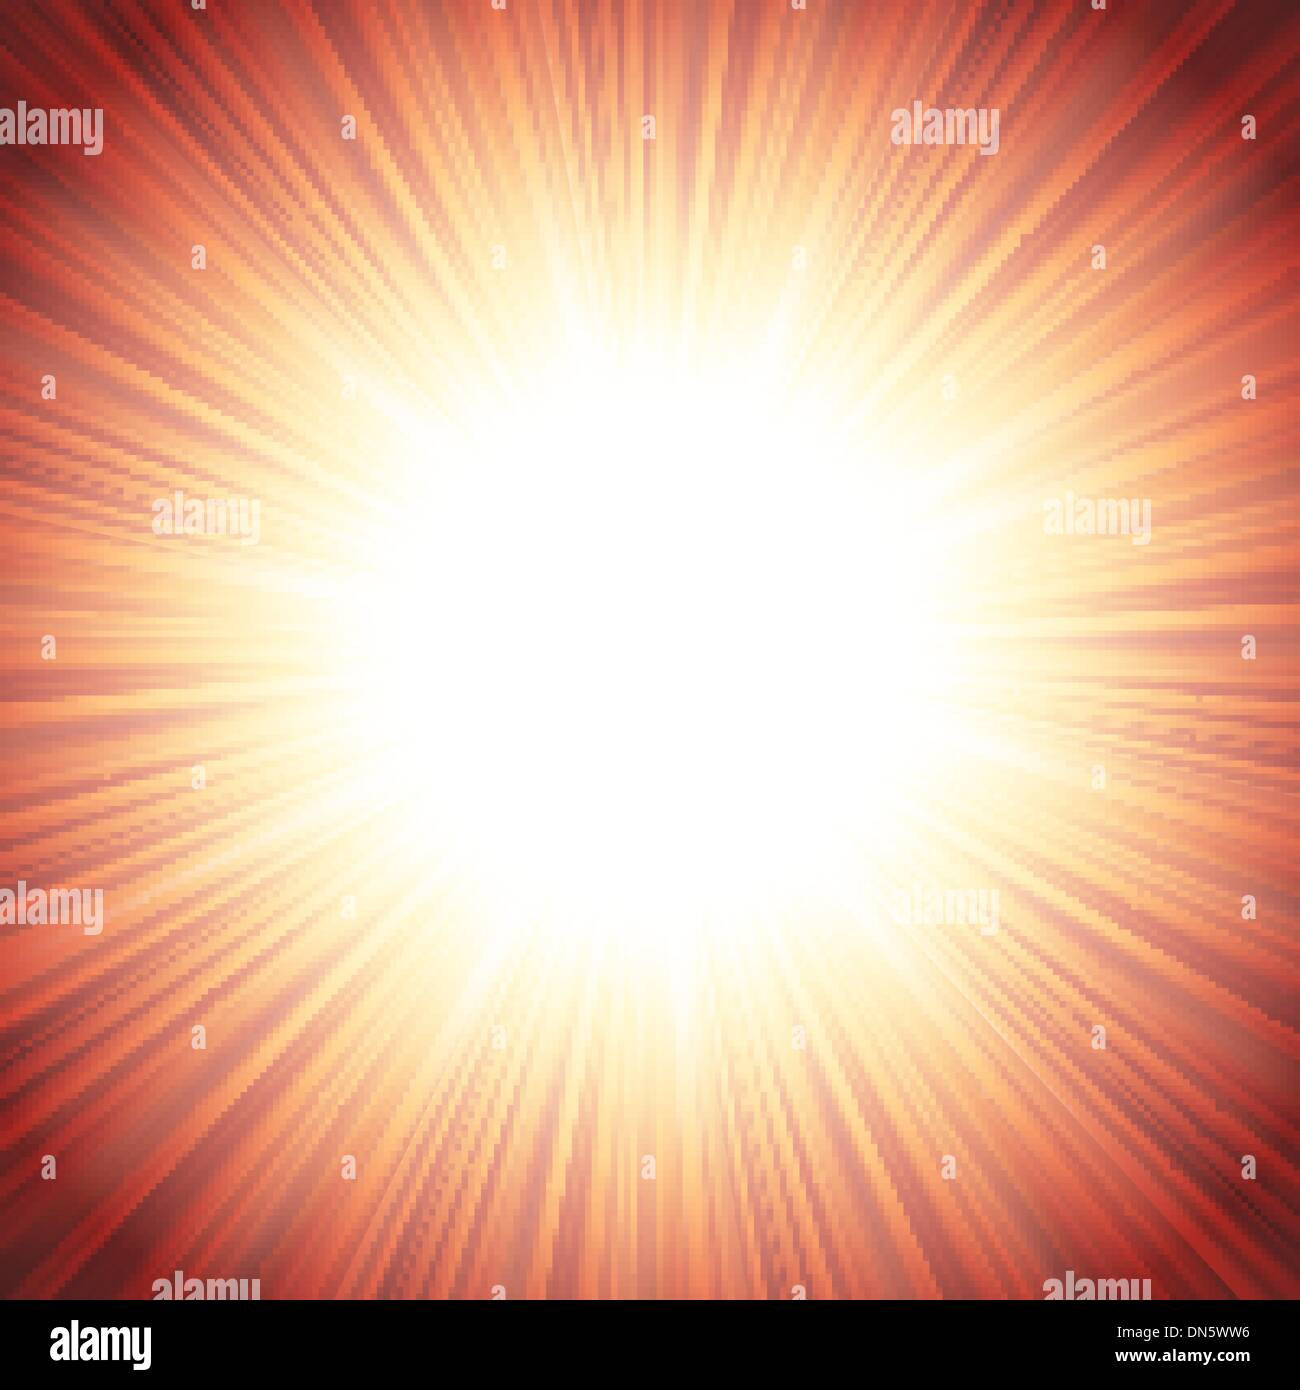 Star burst red and yellow fire. EPS 10 Stock Vector